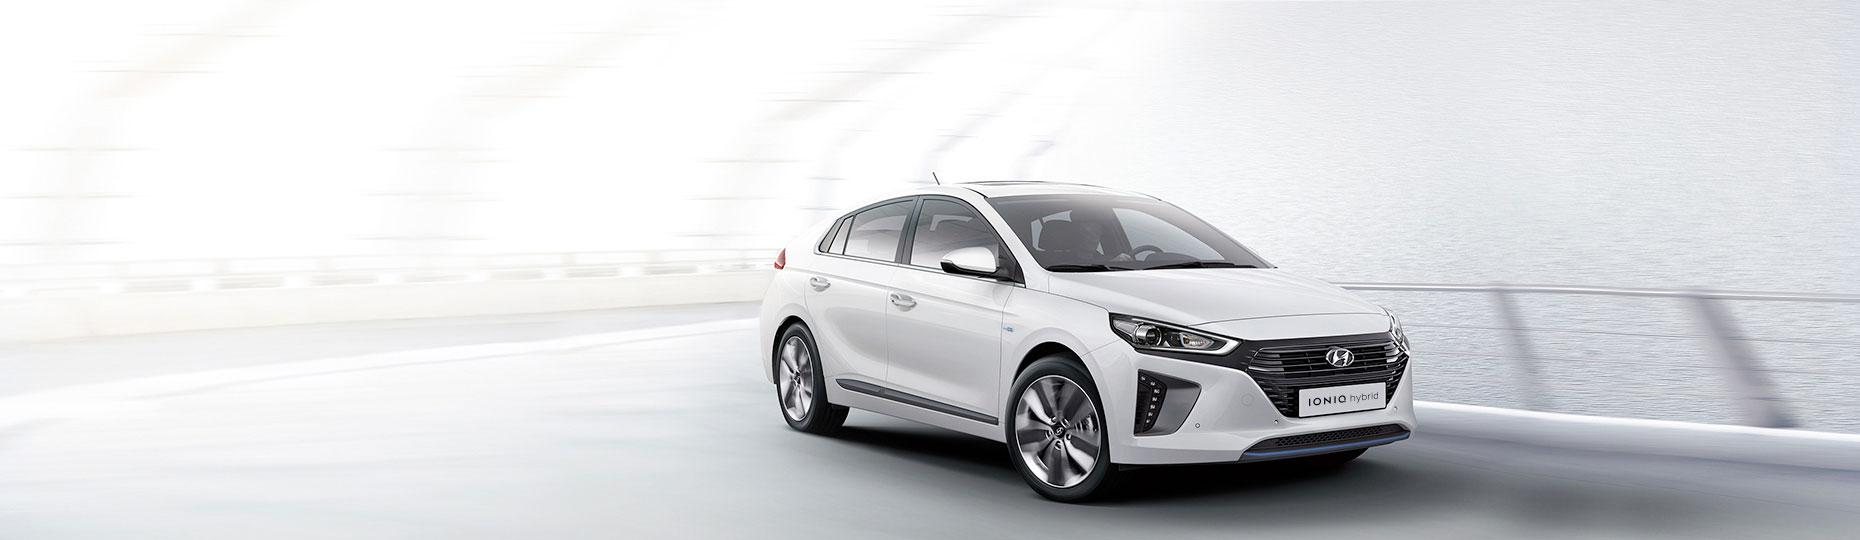 Hyundai Ioniq Hybrid 1.6 Gls At (reservation Fee Only) By Hyundai Pasong Tamo.